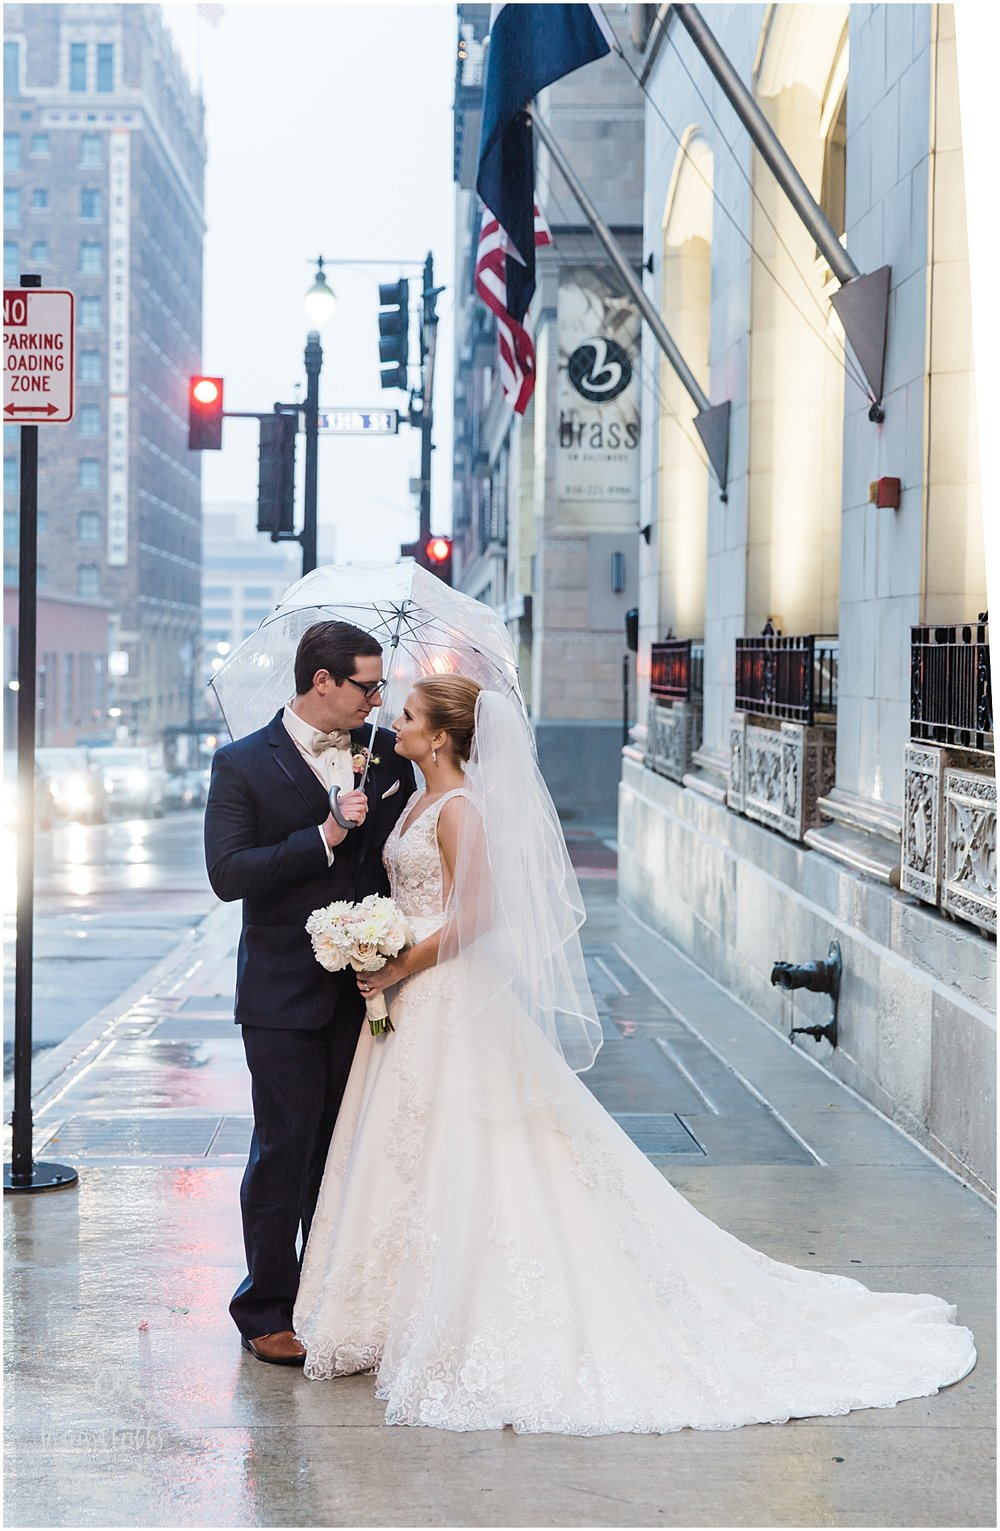 BRASS ON BALTIMORE WEDDING | MARISSA CRIBBS PHOTOGRAPHY_3935.jpg